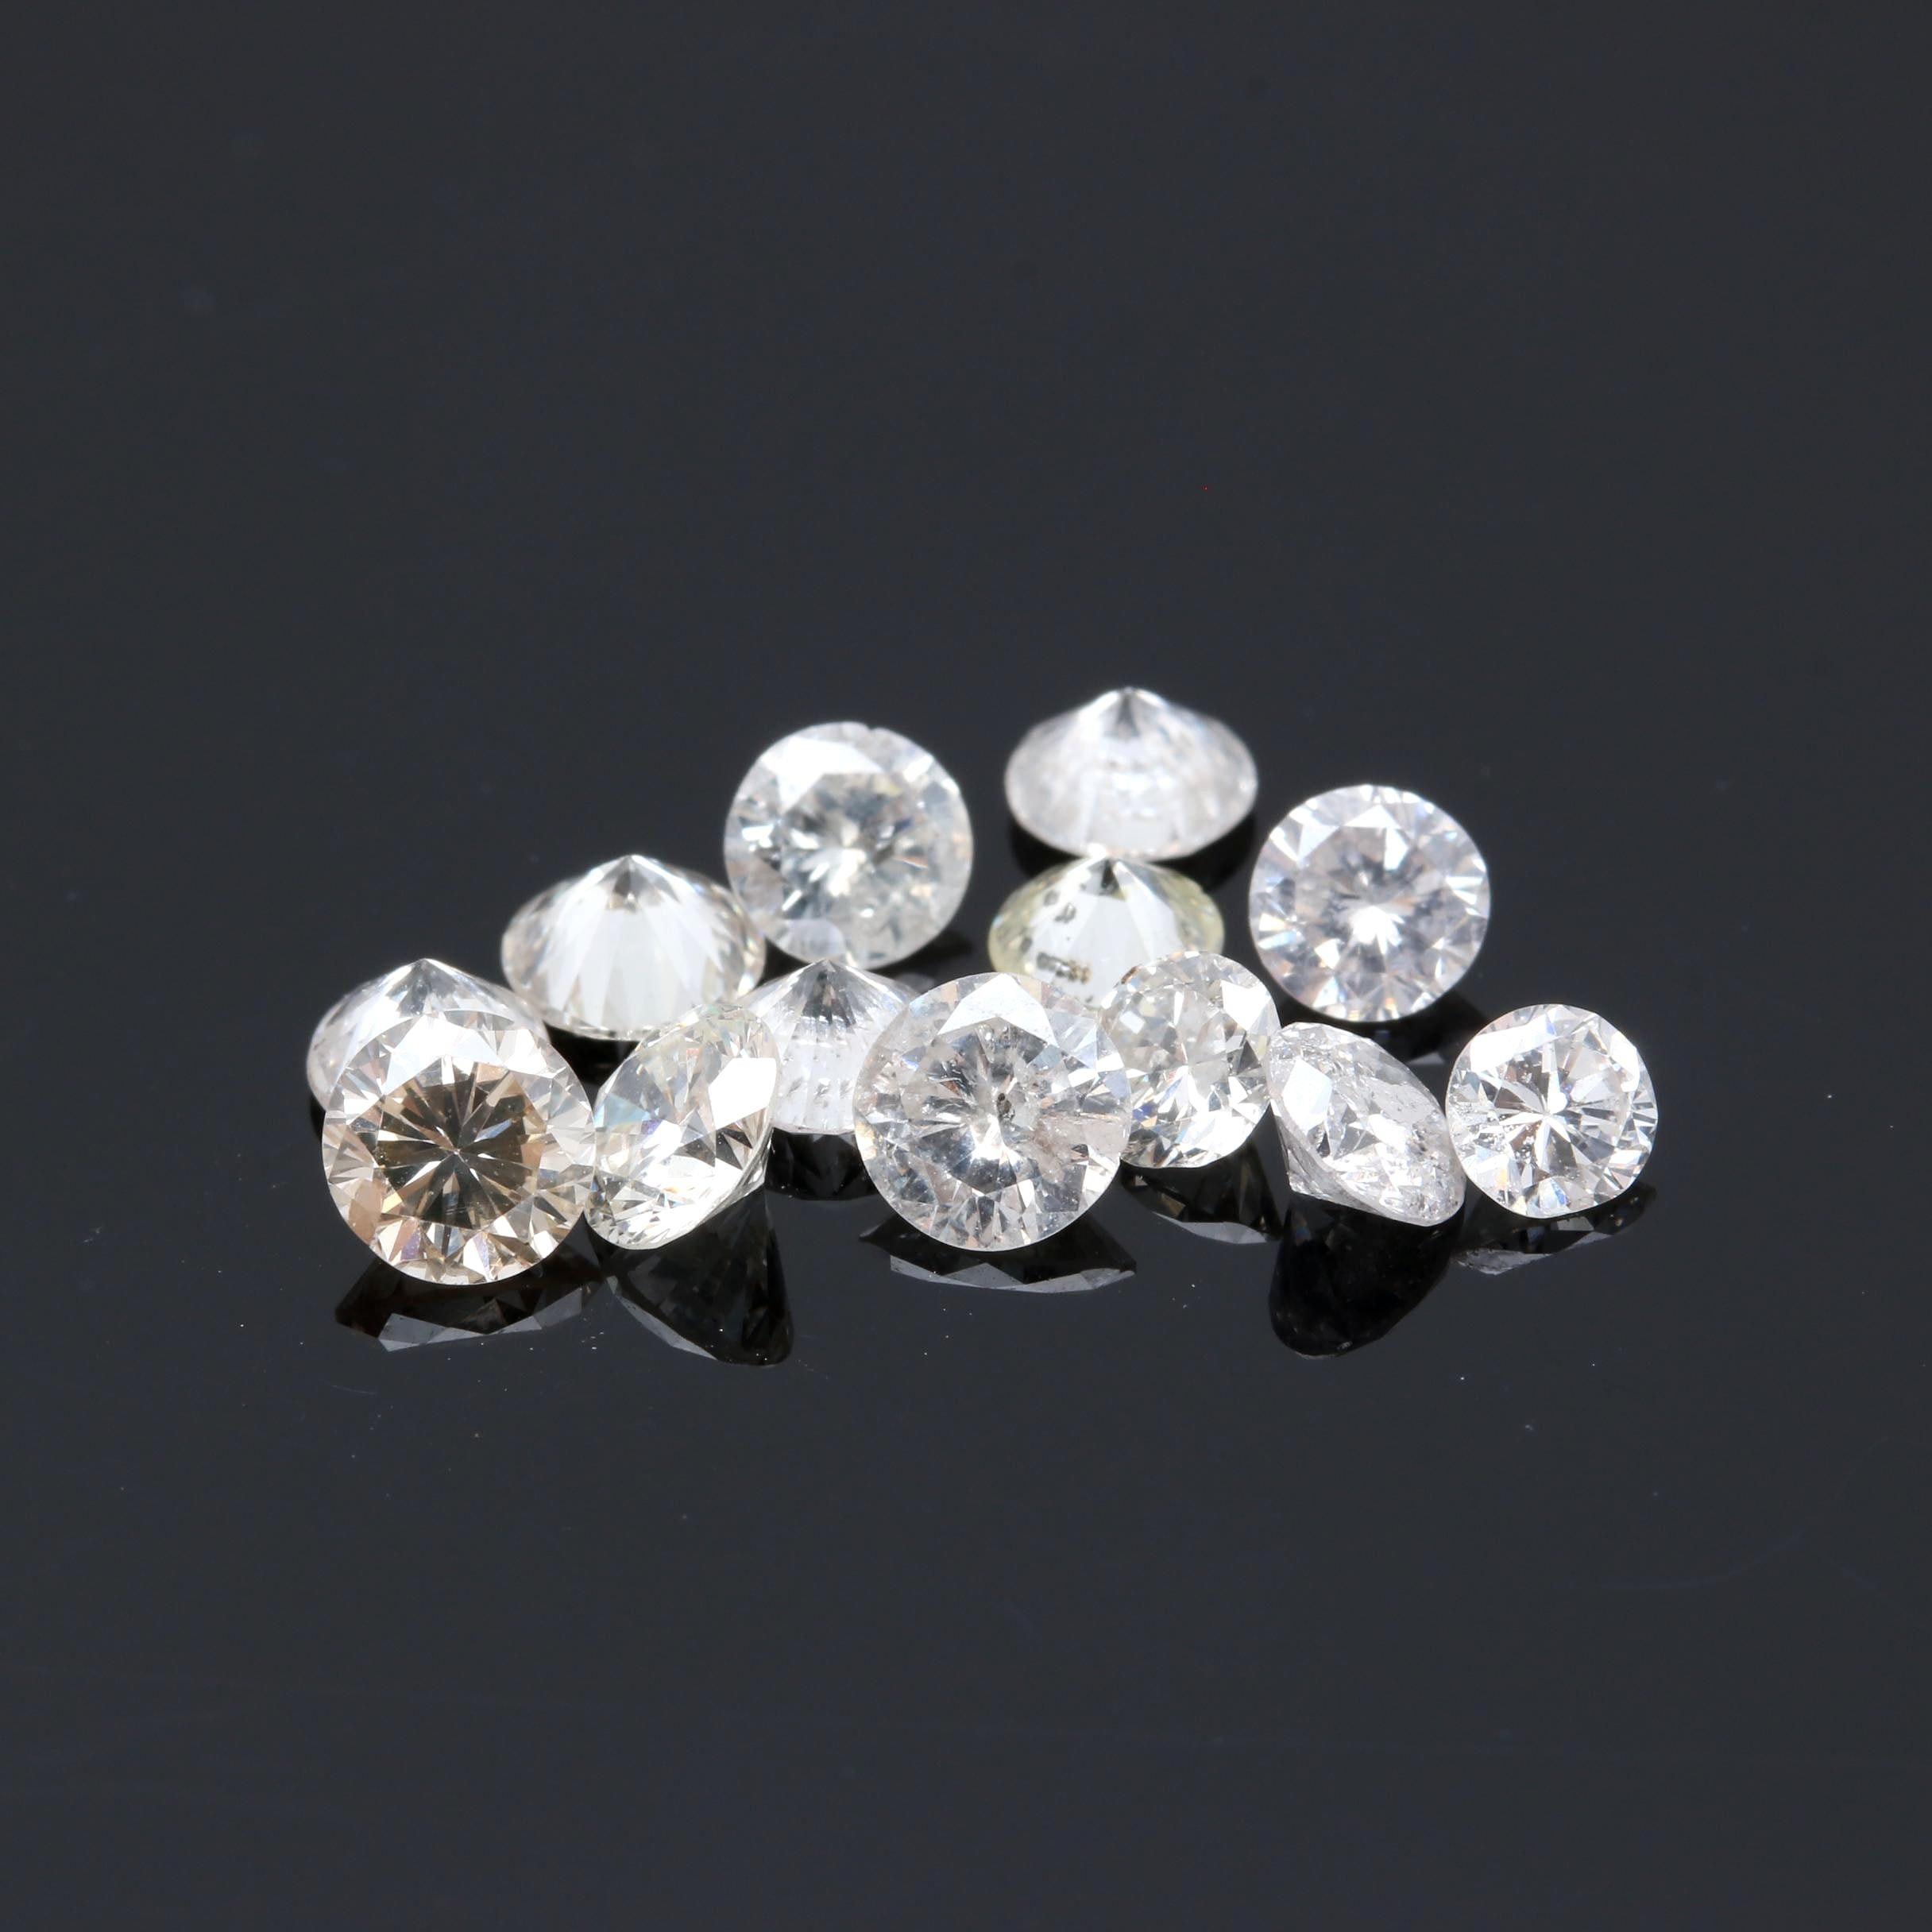 2.67 CTW Loose Diamonds